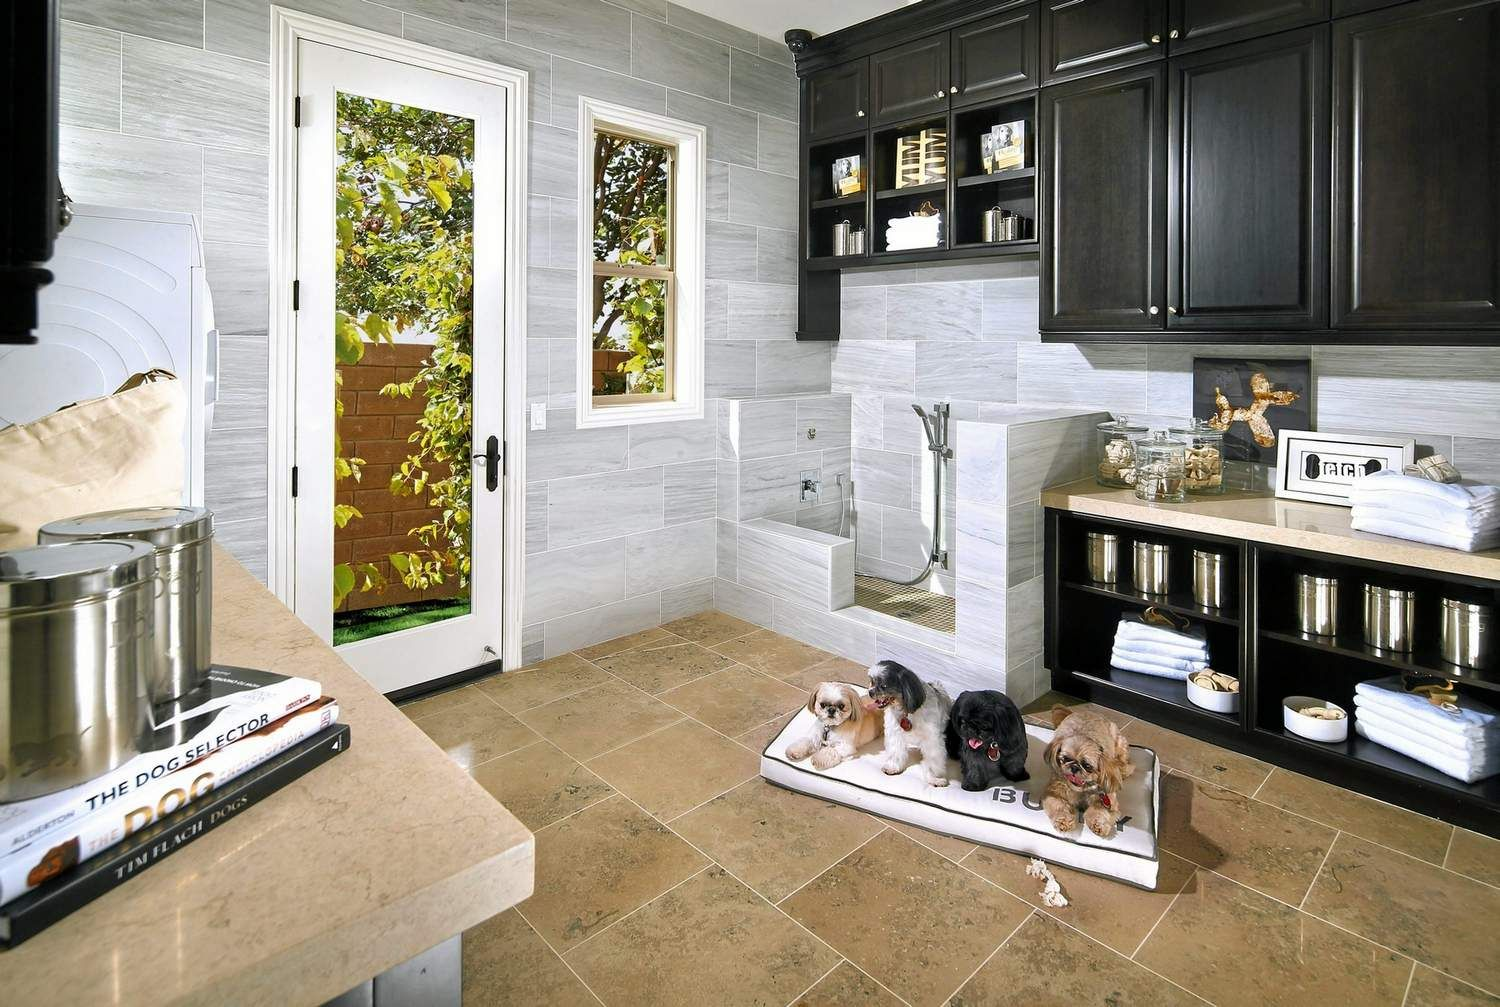 SoCal home builder finds pet suites a winning amenity